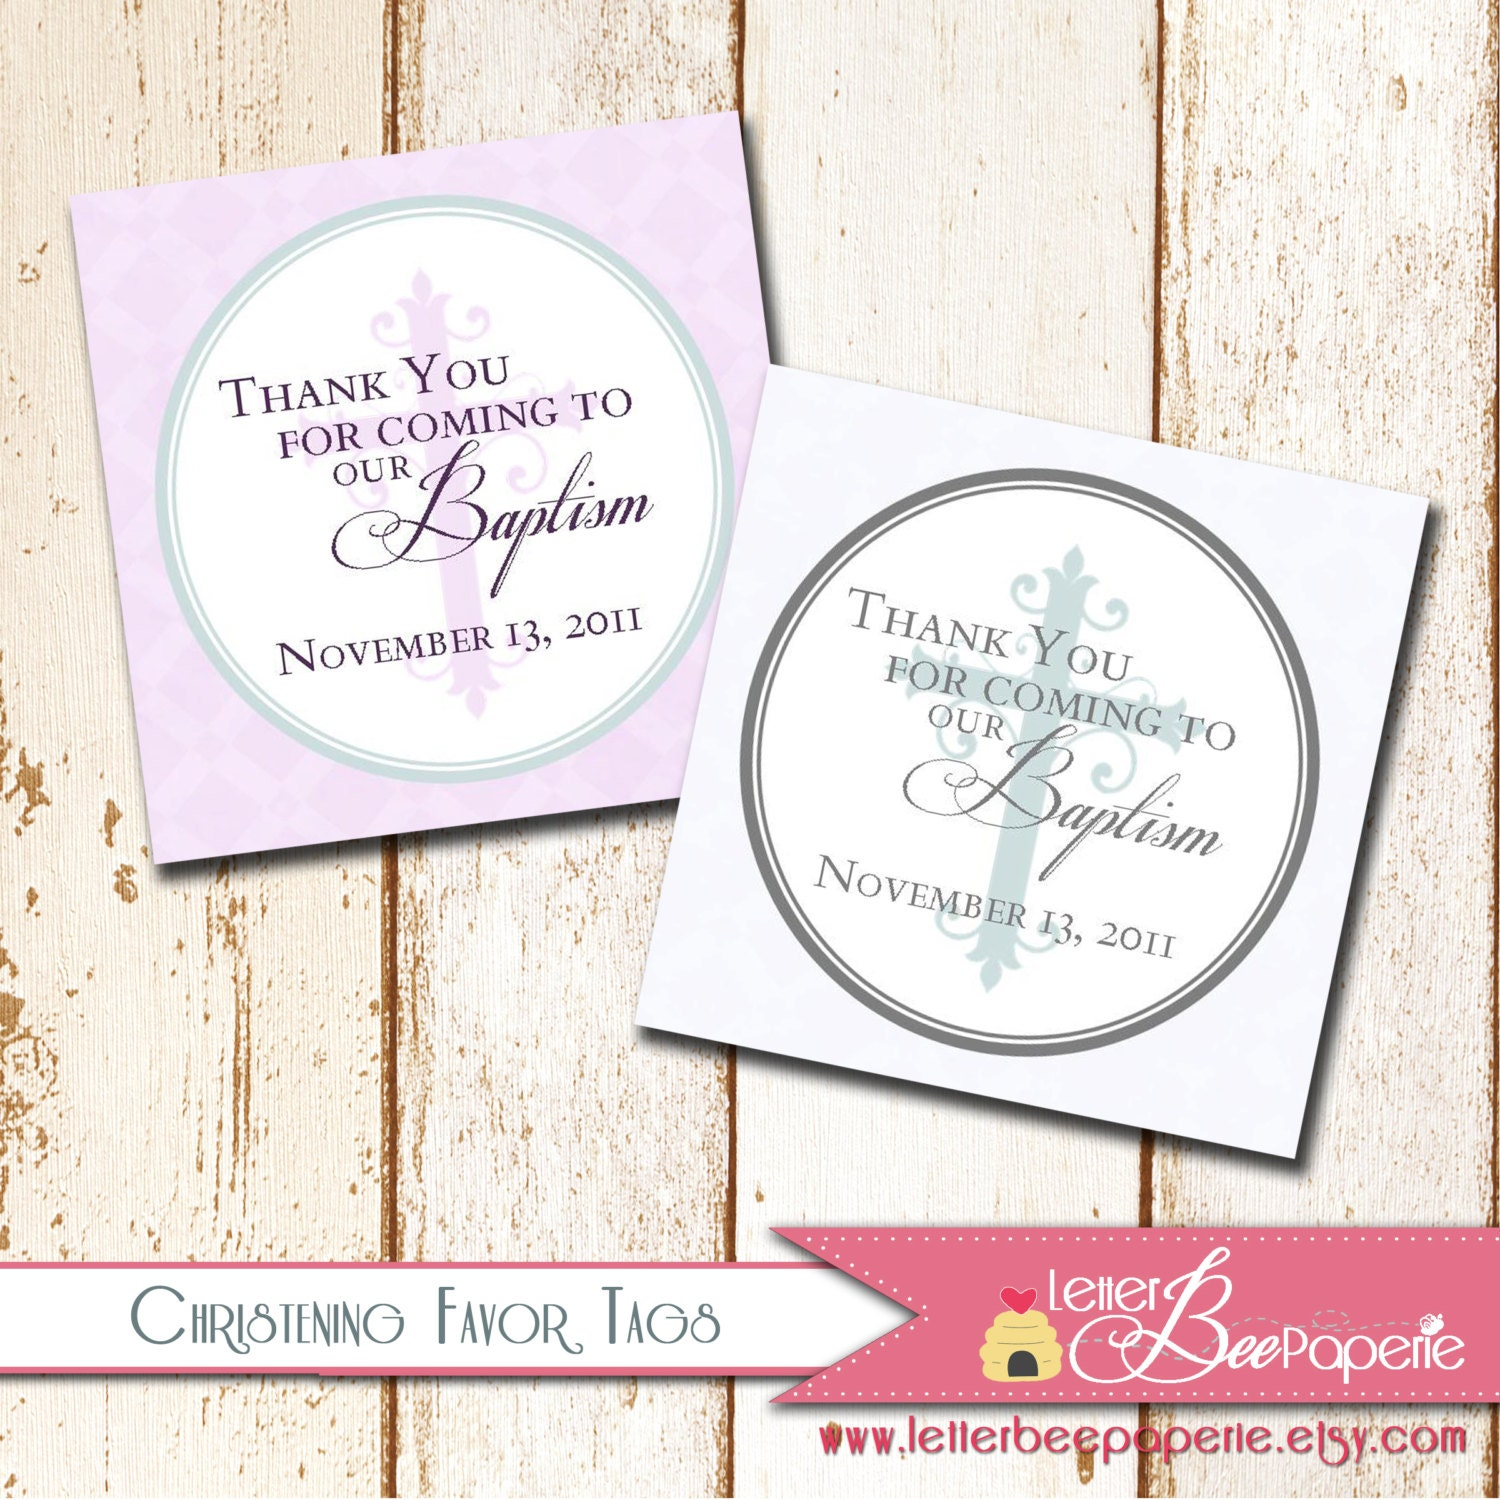 baptism christening thank you favor tags 2x2 or 3x3 size. Black Bedroom Furniture Sets. Home Design Ideas